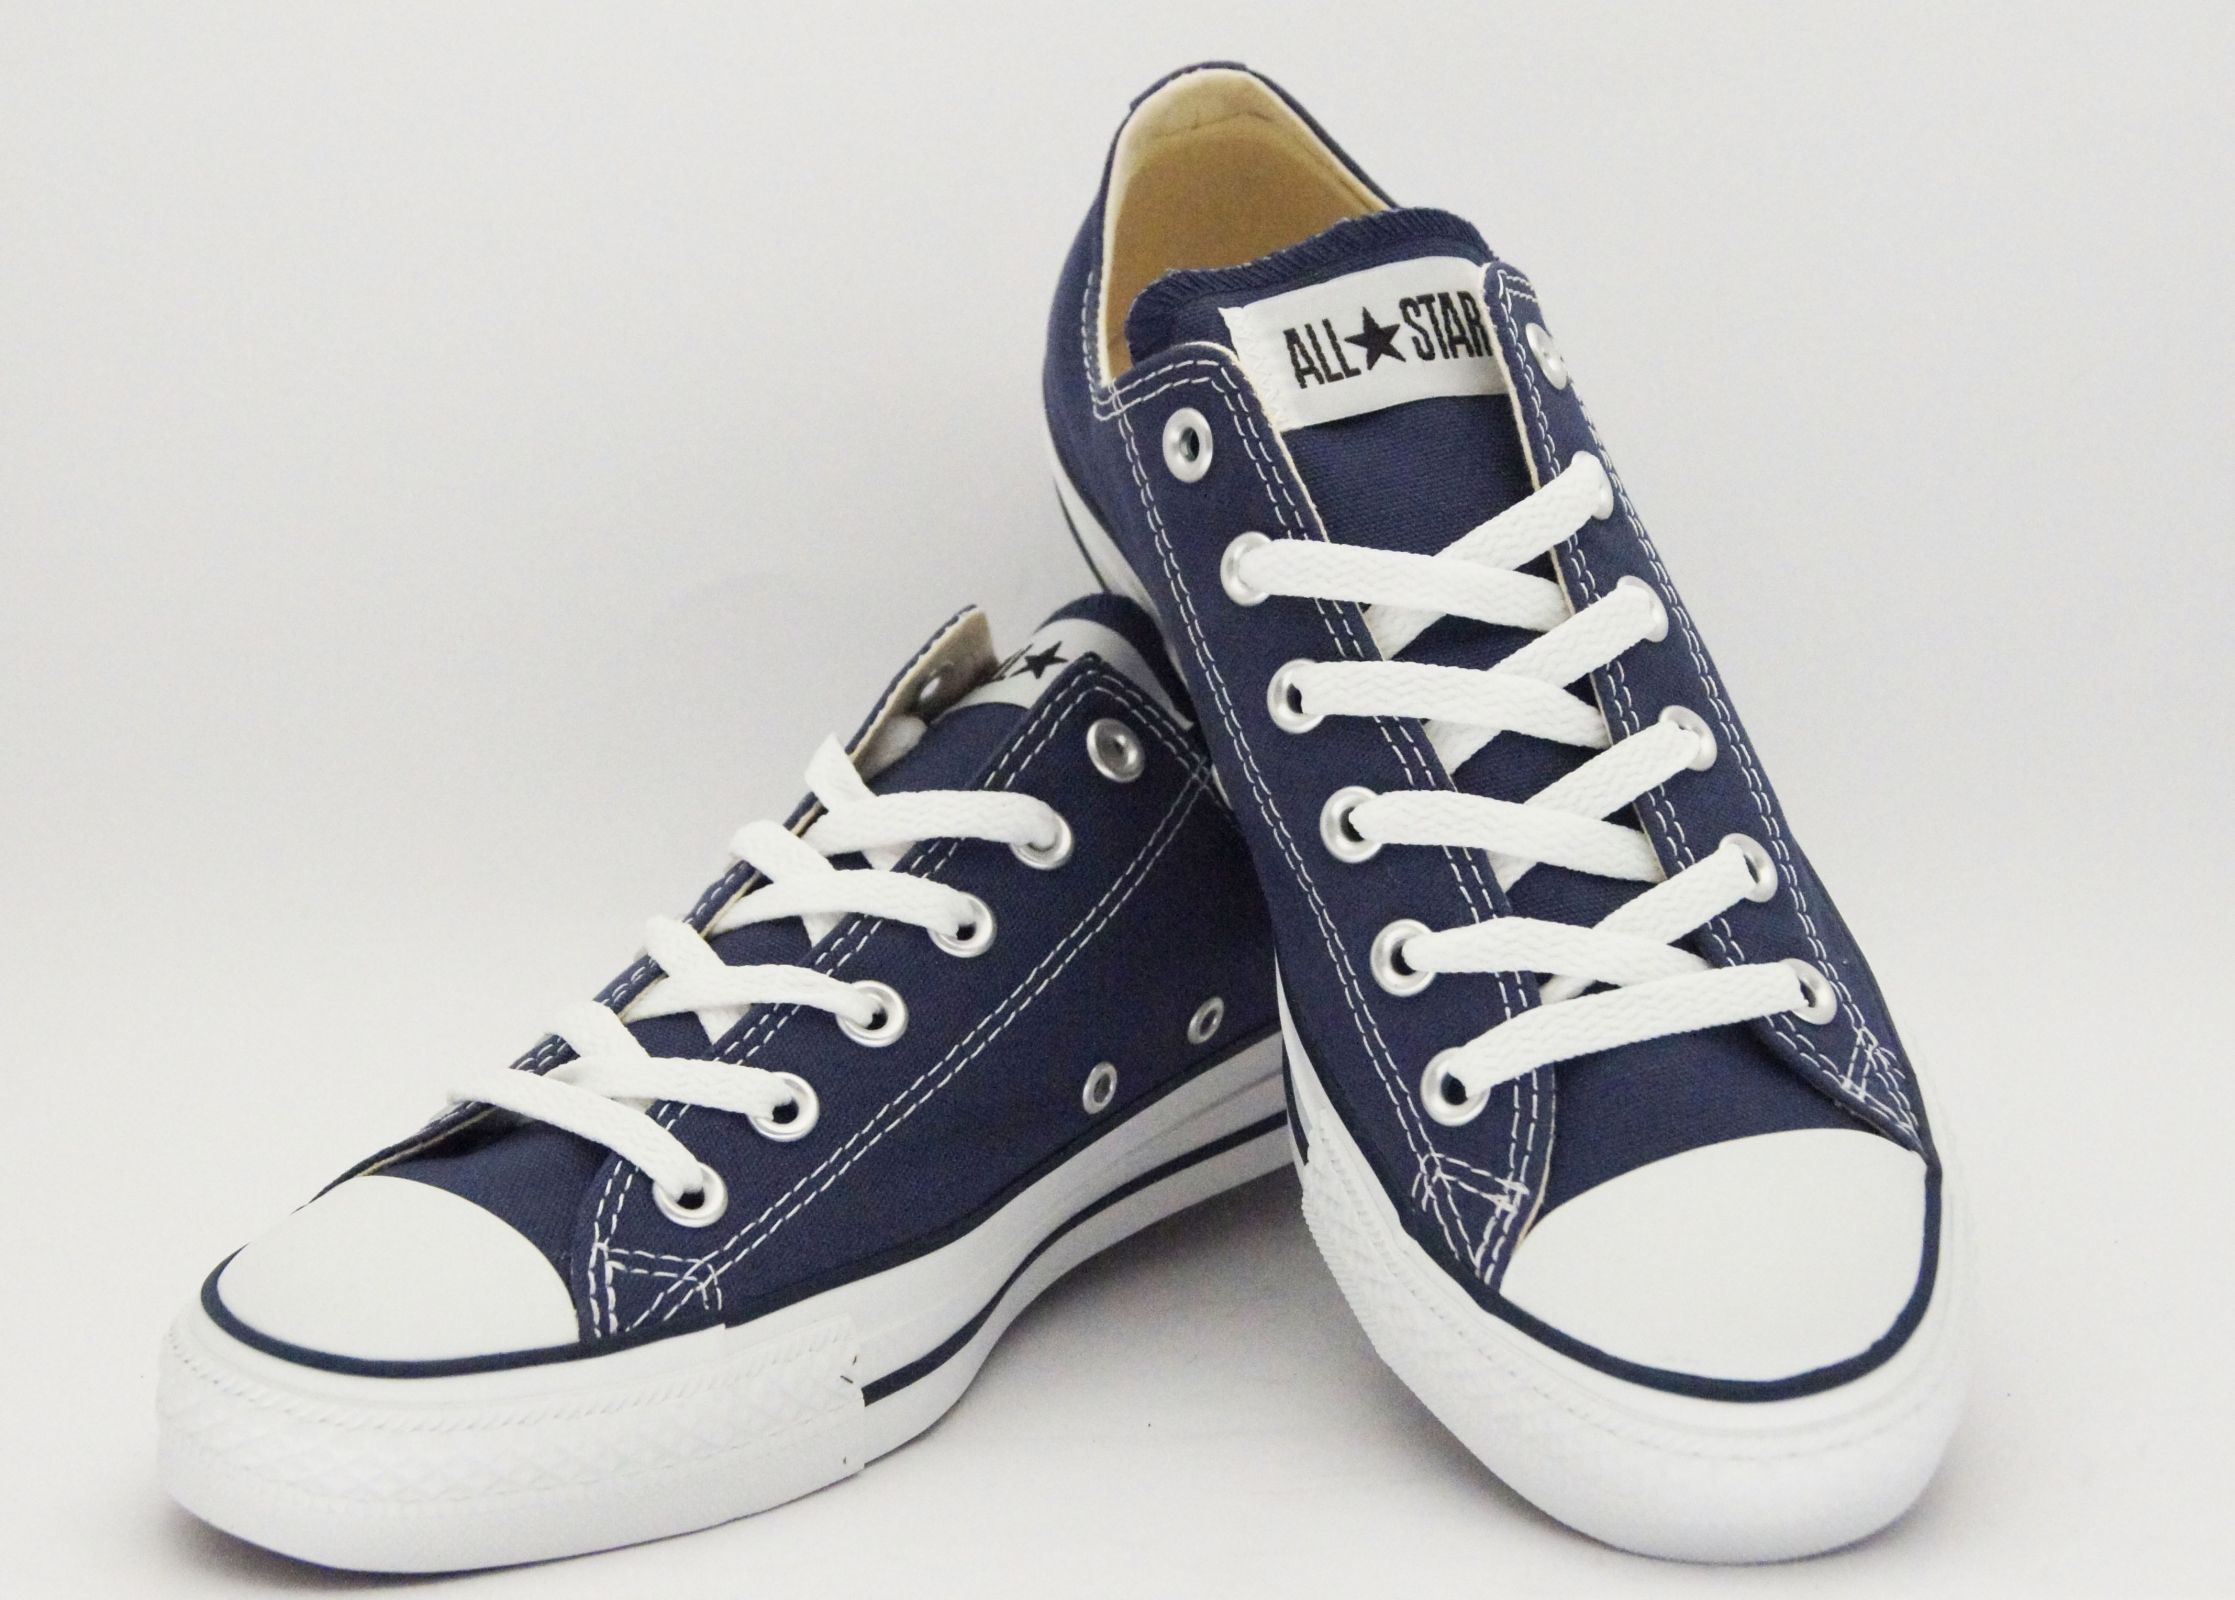 converse navy. navy blue converse. i really want a pair of these to wear with my school converse